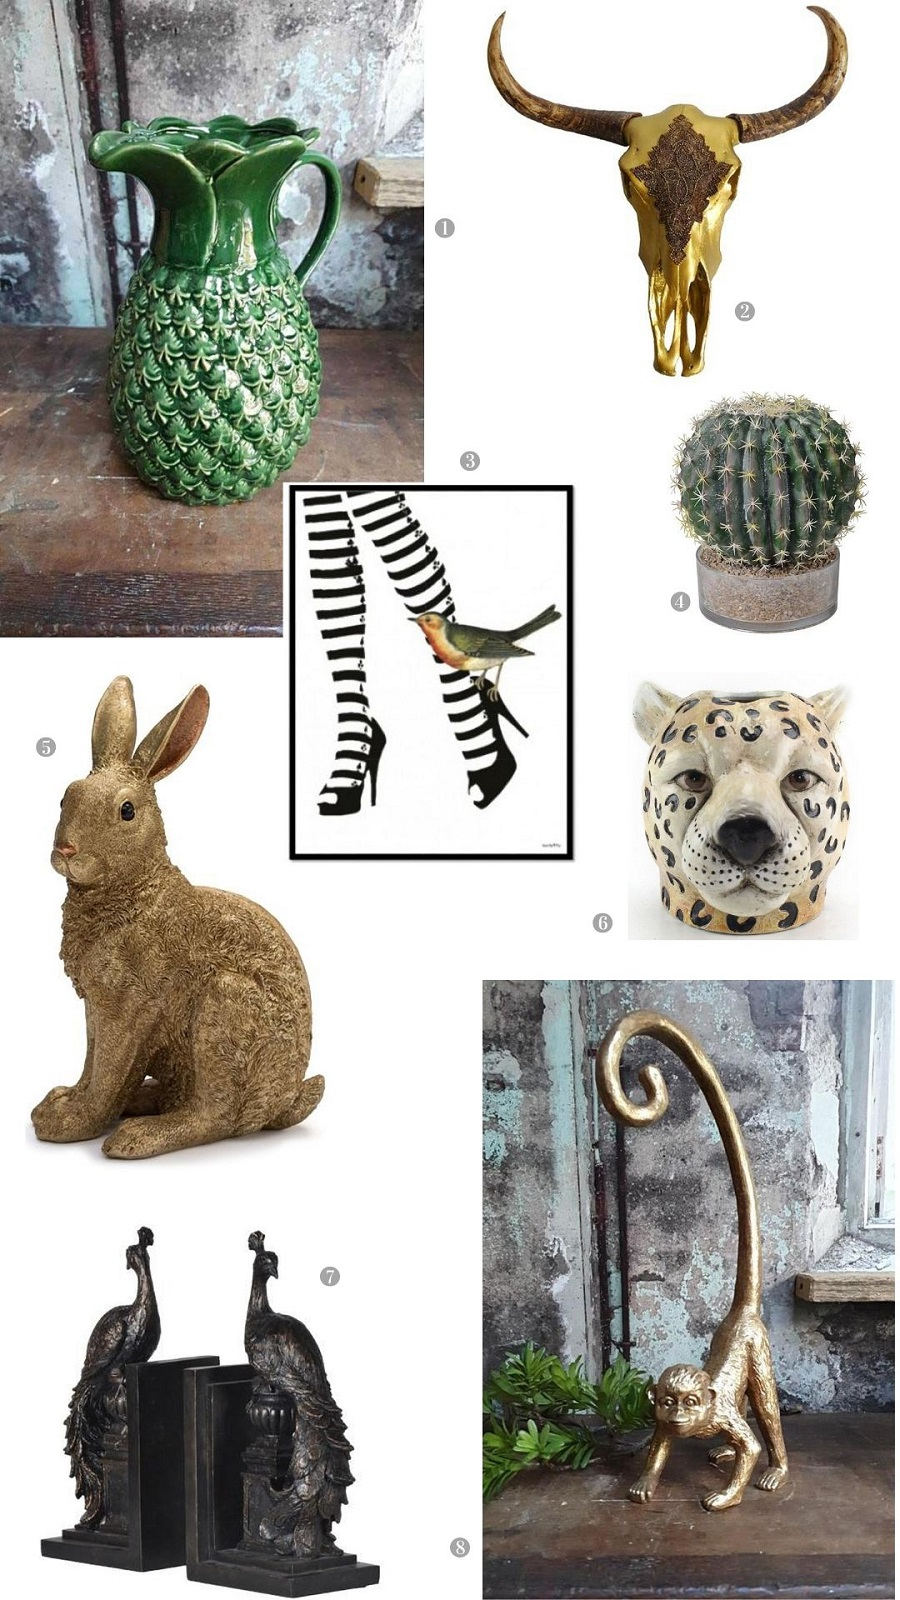 Introducing Hilary and Flo for Quirky Home Accessories